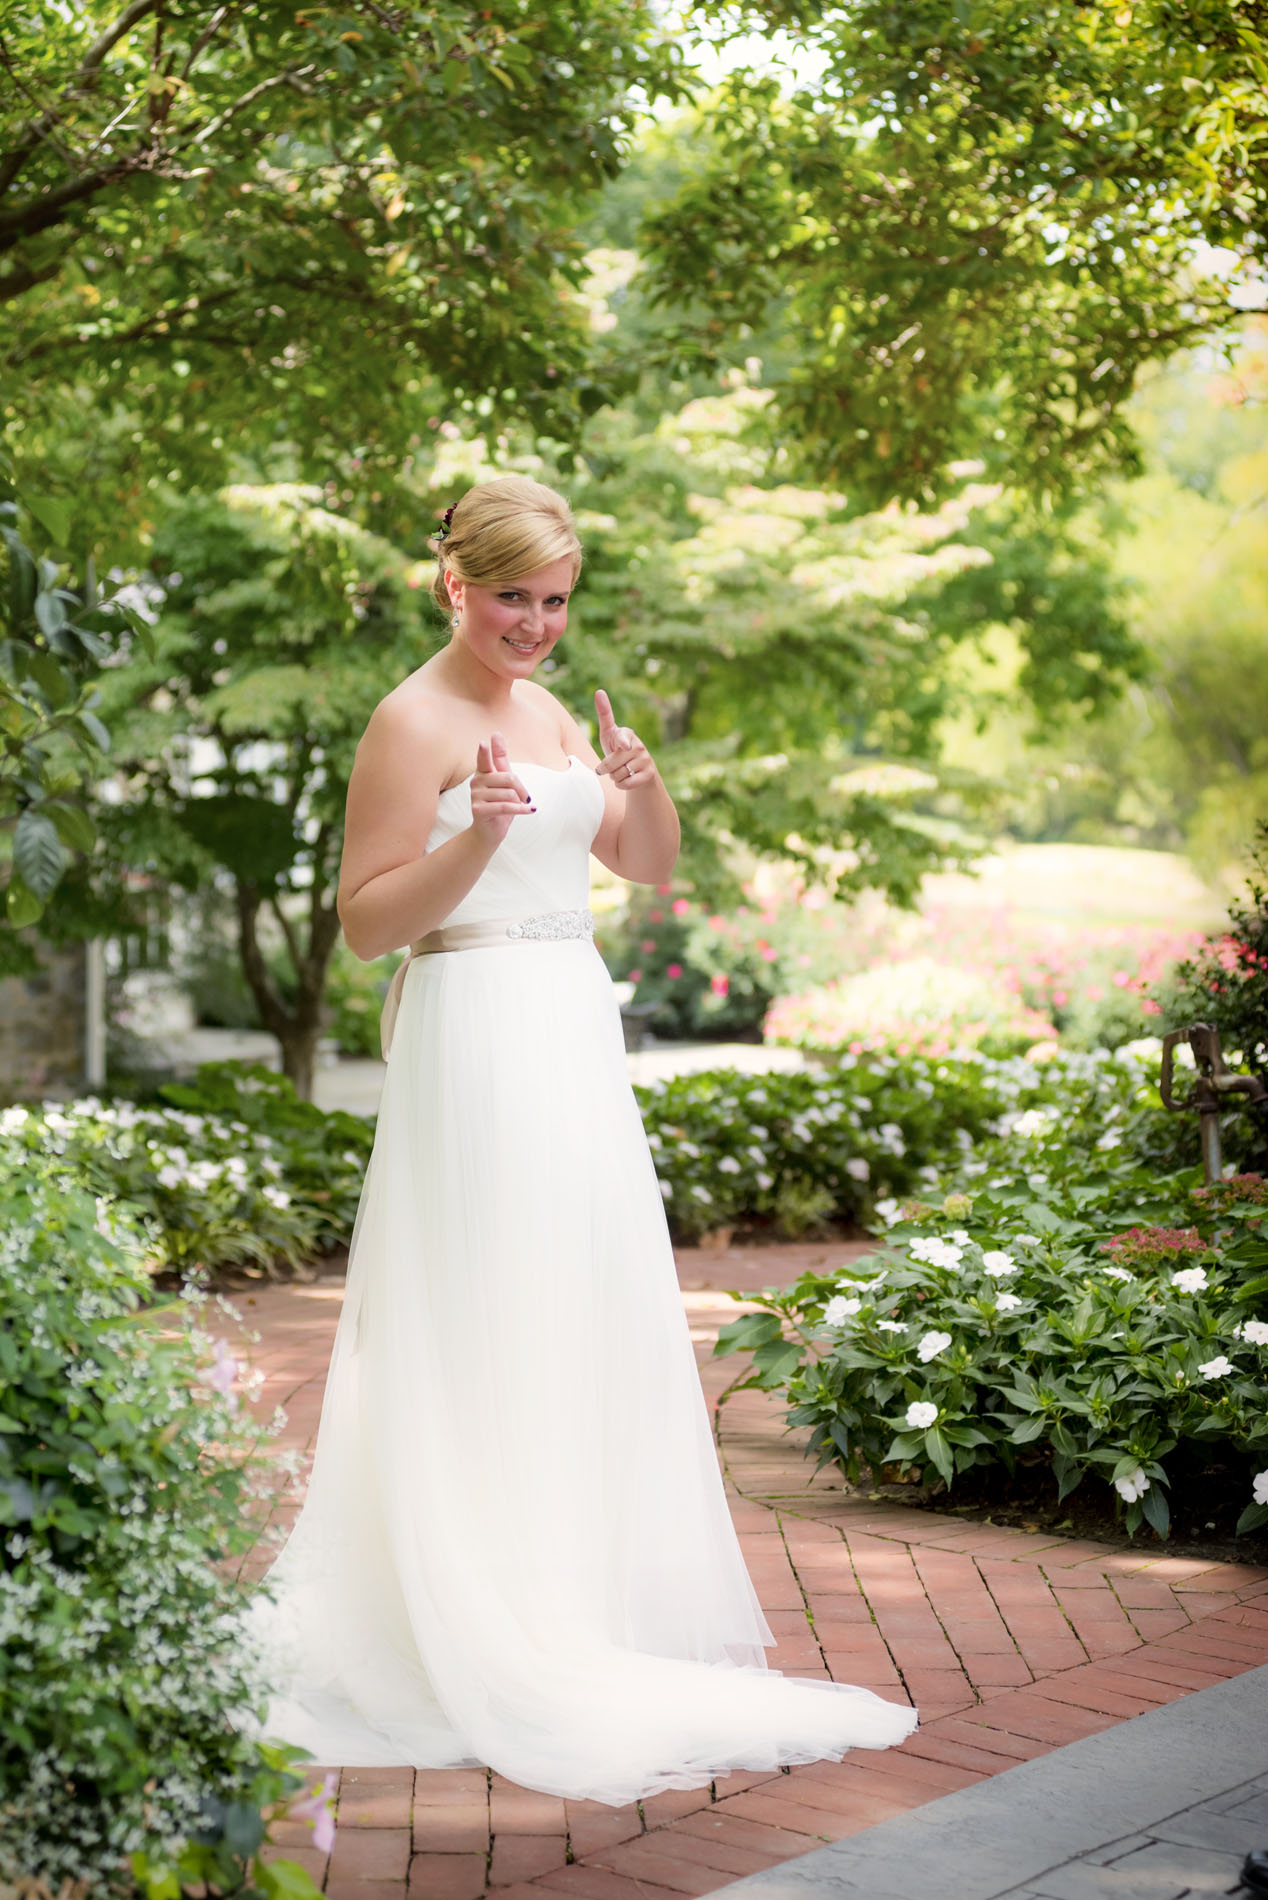 A Modern Natural Wedding At The Candy Factory In Lancaster Pennsylvania